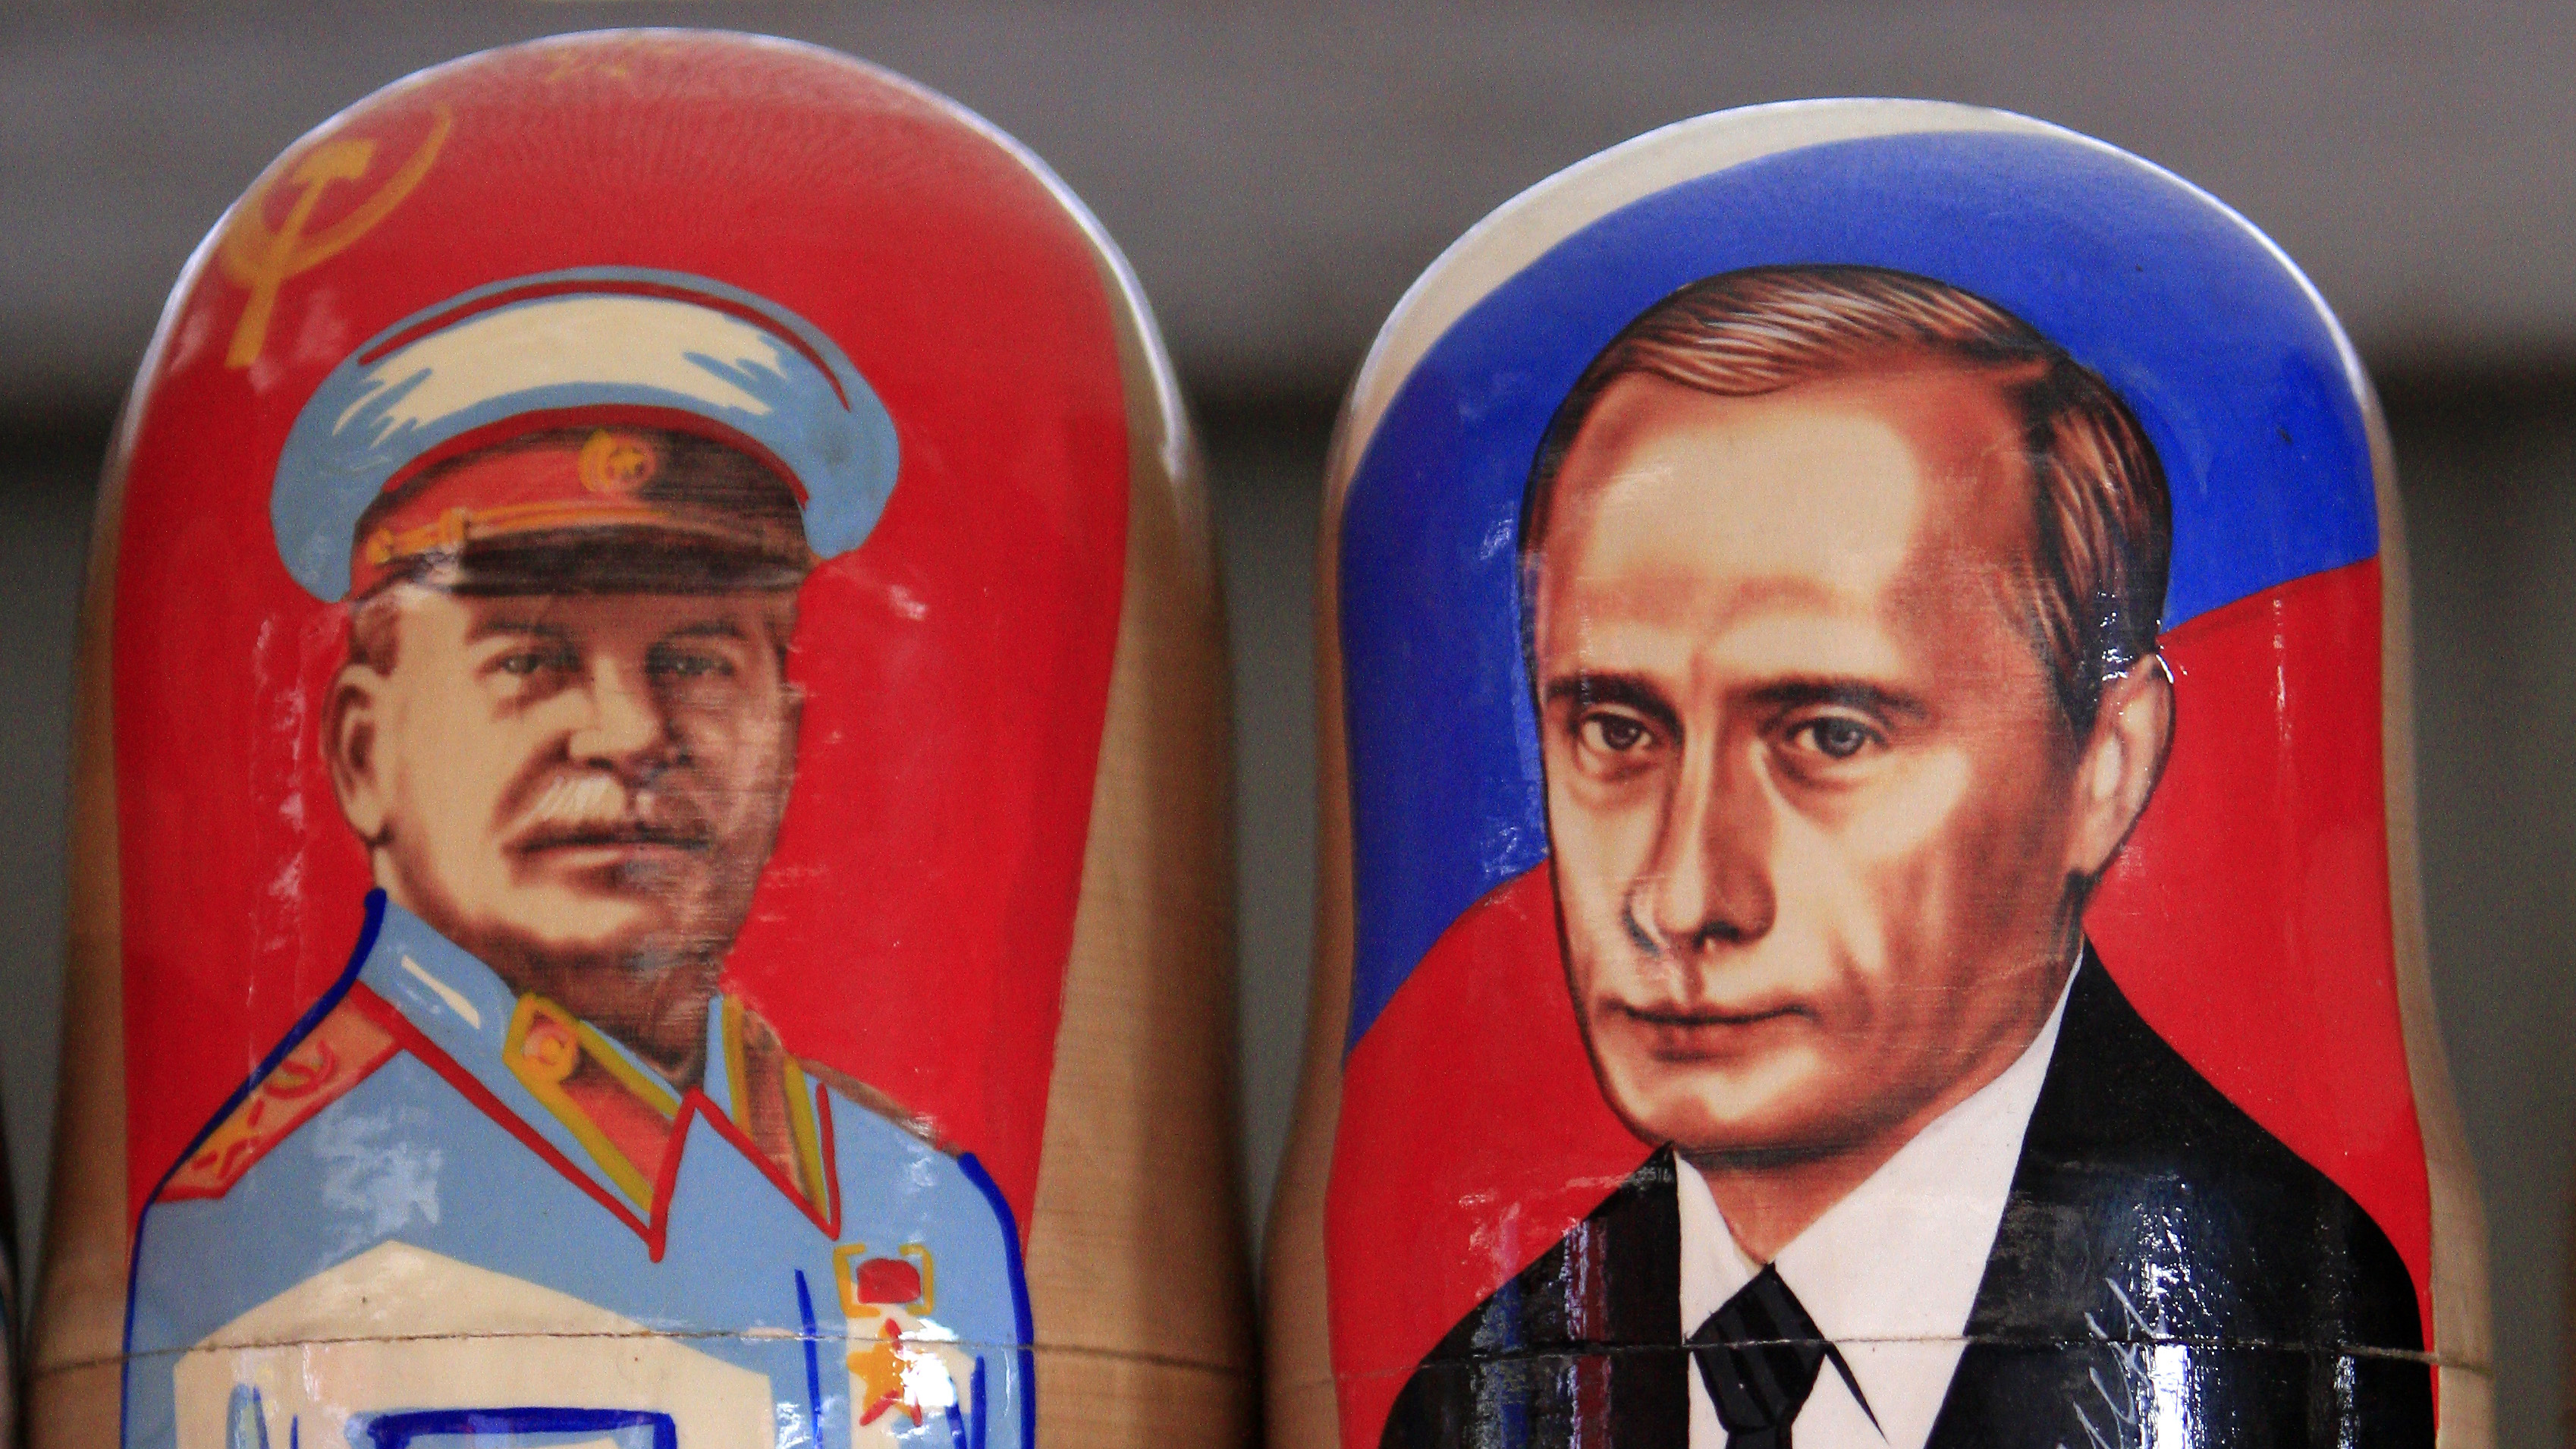 Traditional Matryoshka dolls or Russian nesting dolls bearing the faces of Russia's president elect and current Prime Minister Vladimir Putin and former Soviet dictator Josef Stalin are seen in a souvenir shop in Kiev March 5, 2012.